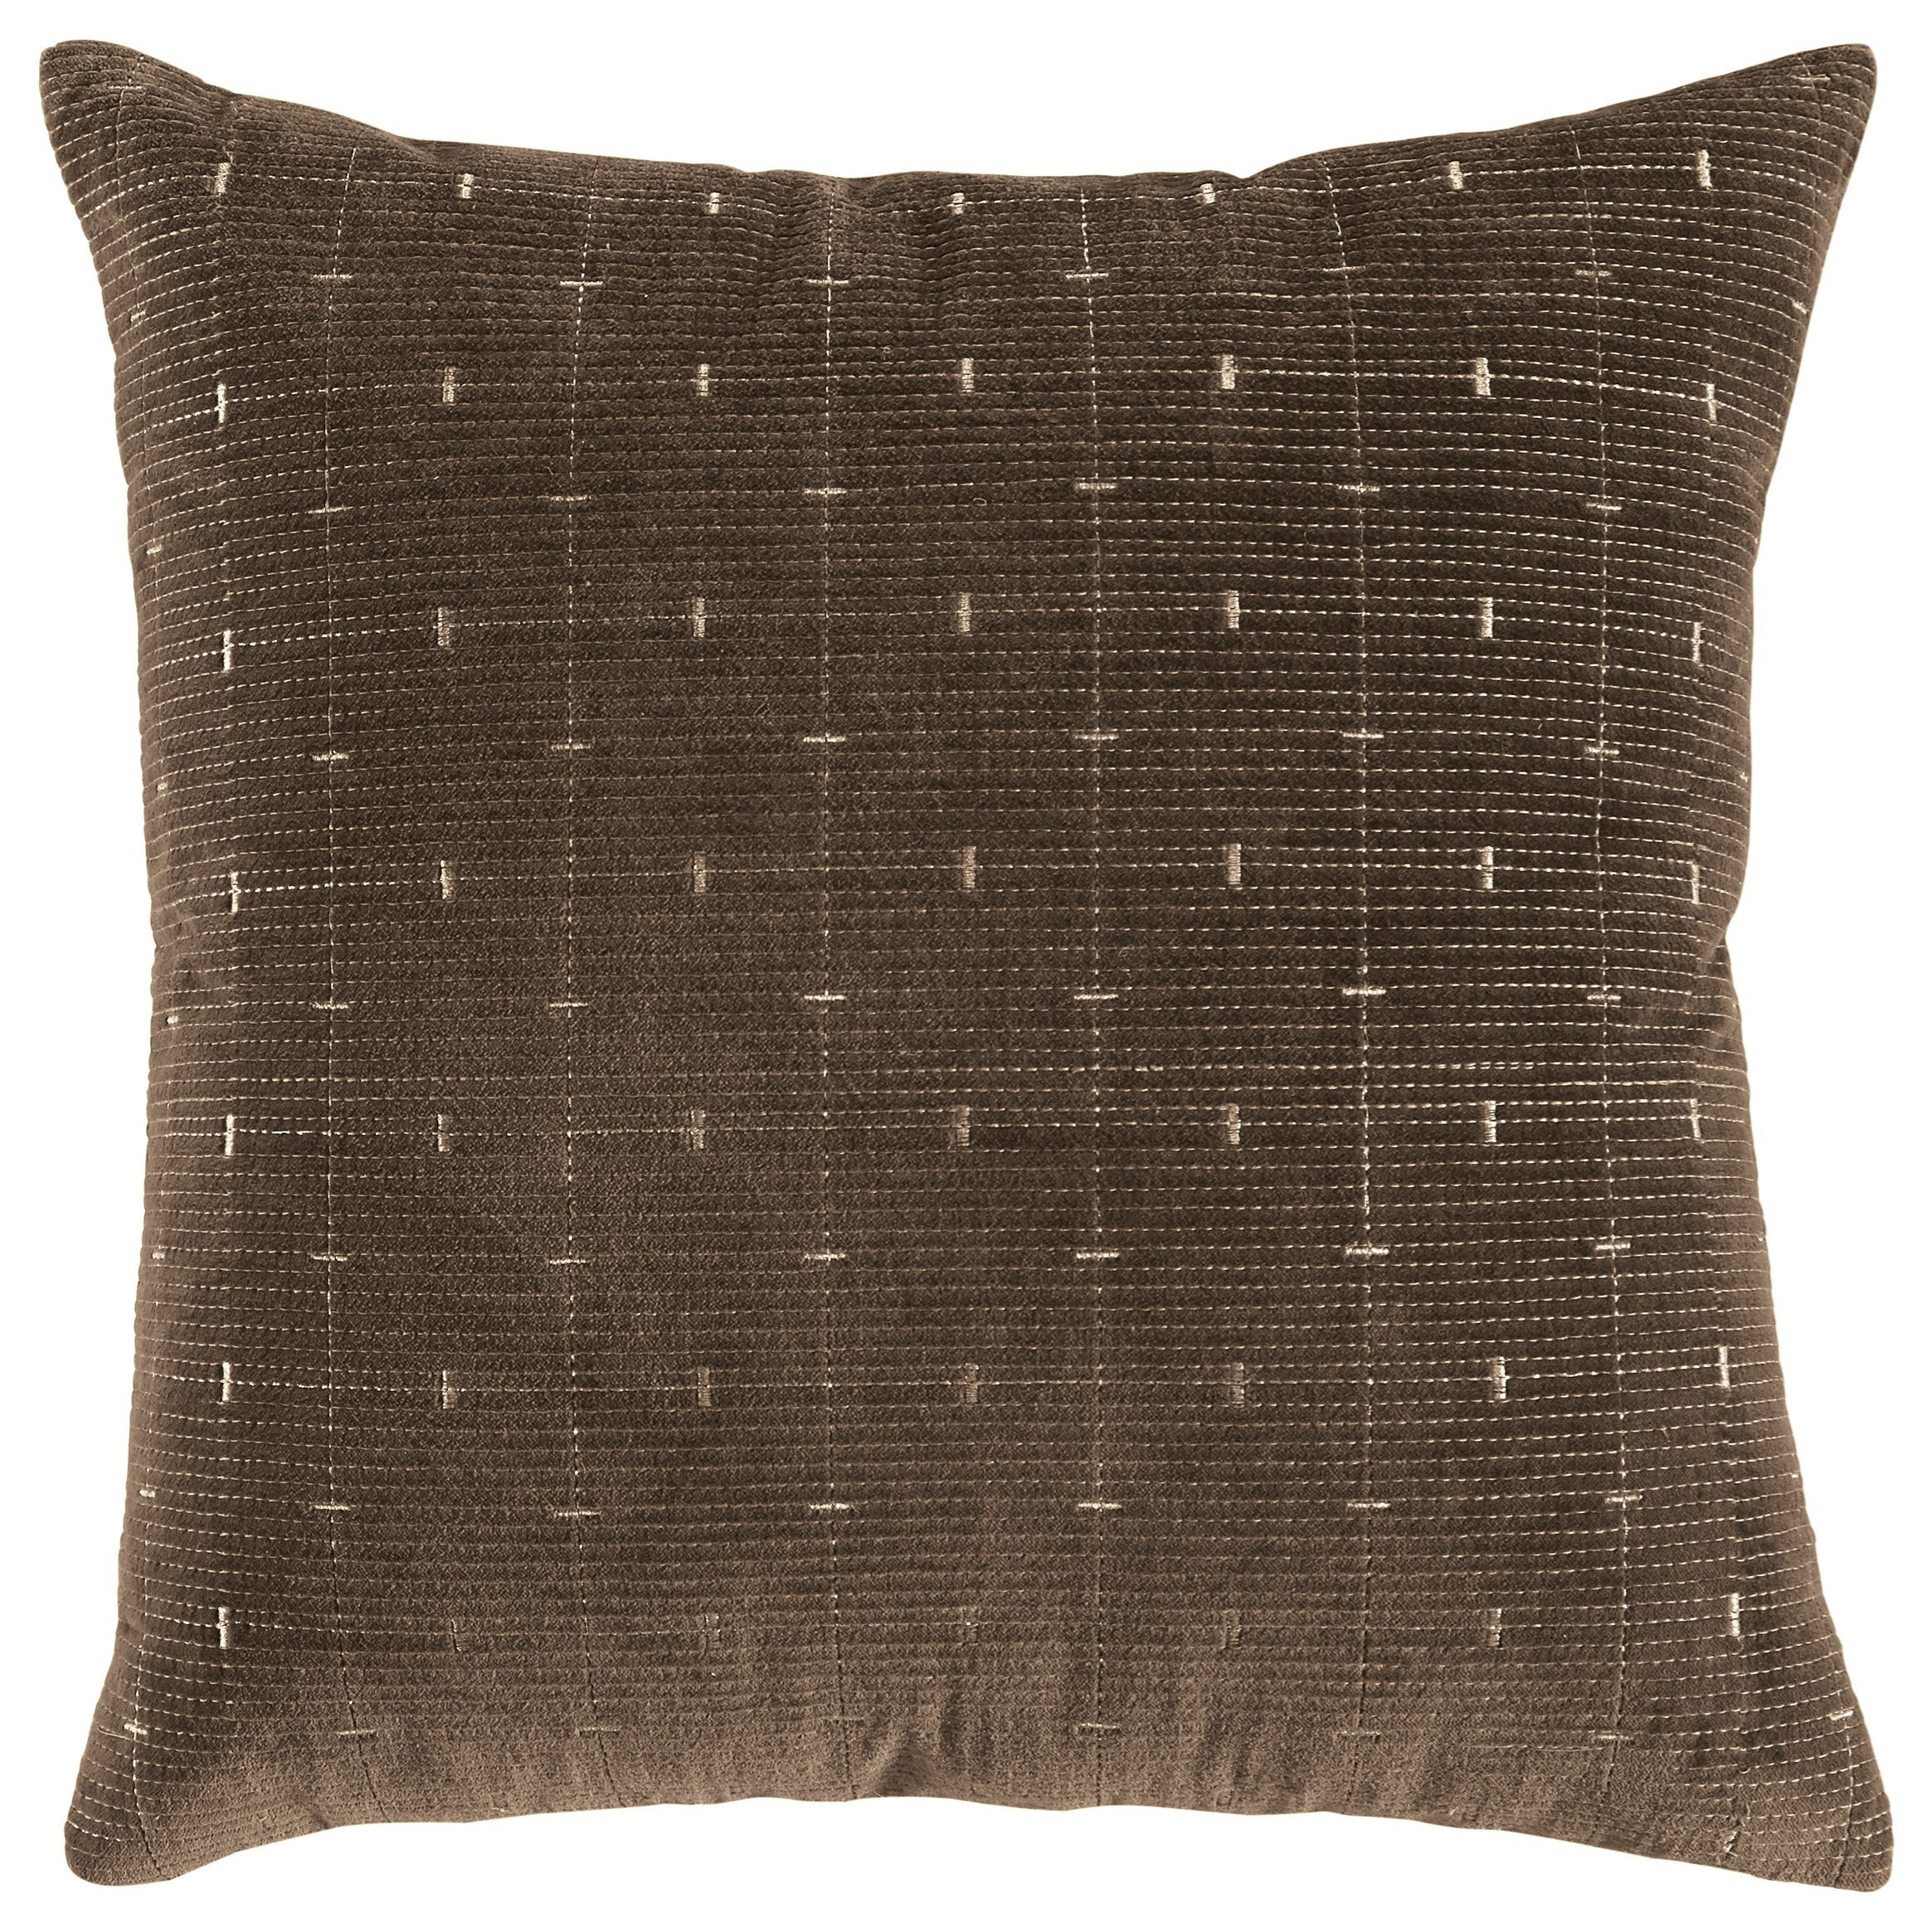 Pillows Quimby Brown Pillow by Ashley (Signature Design) at Johnny Janosik